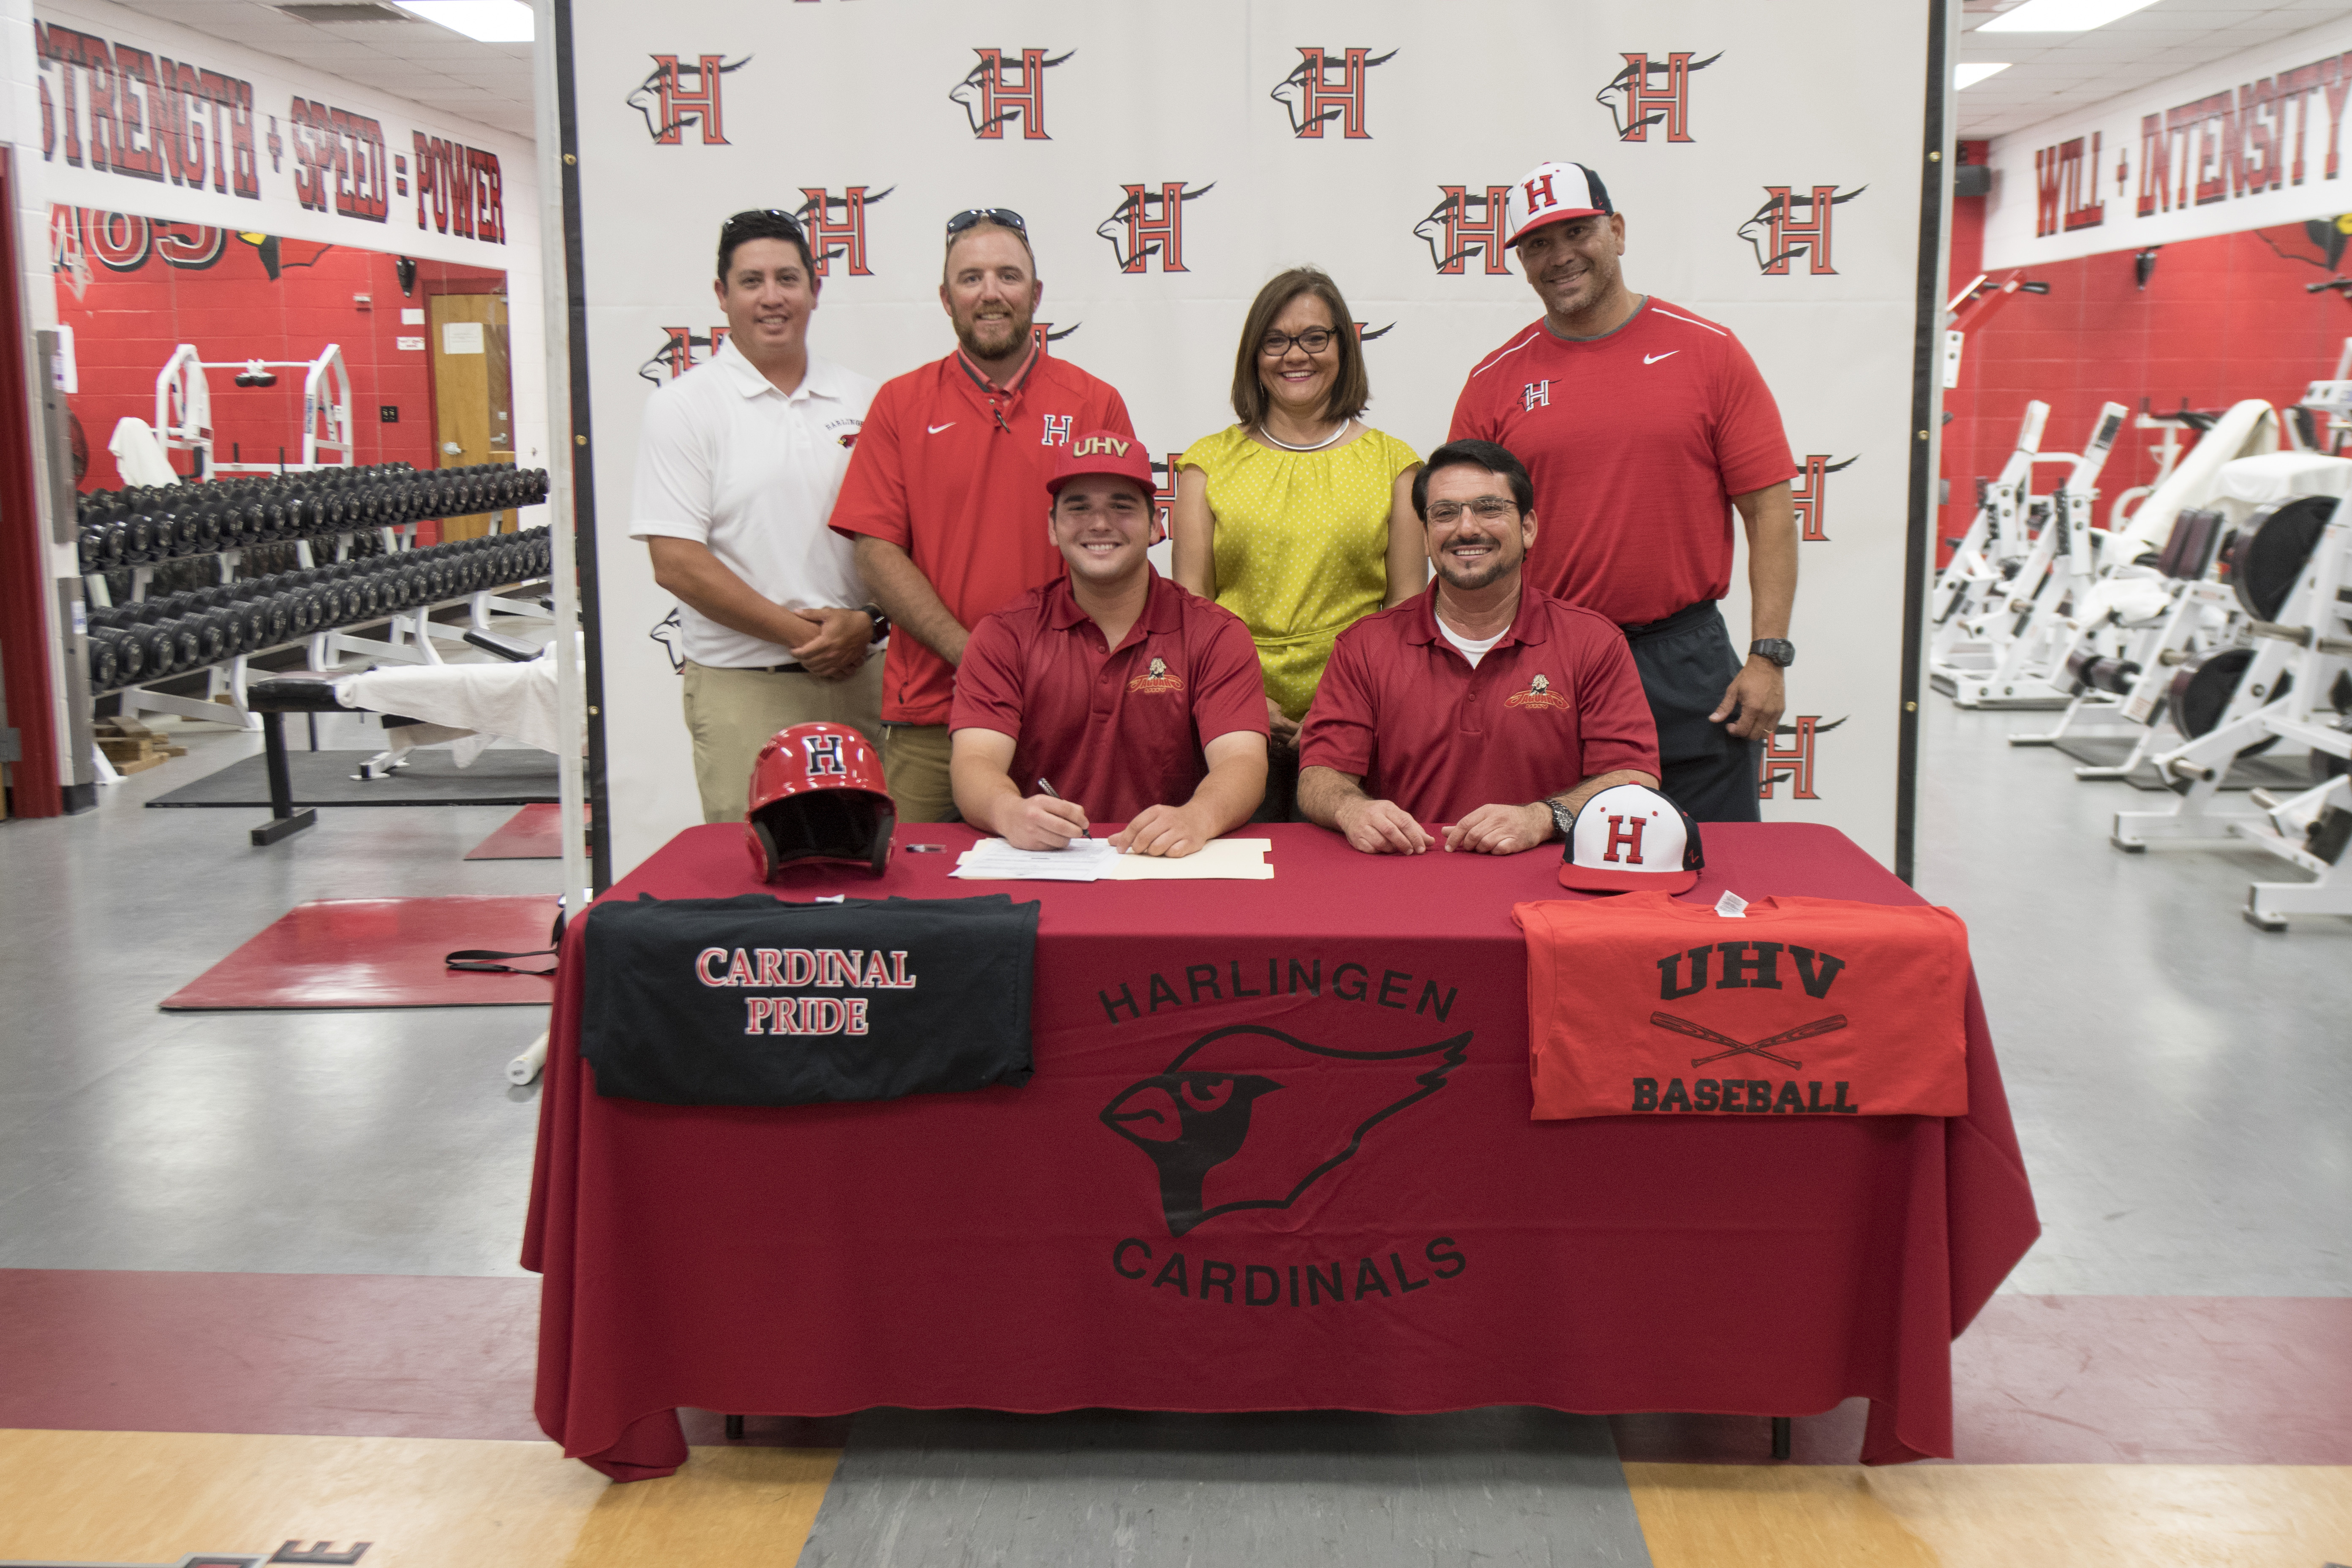 Cardinal athlete signs to play baseball for the University of Houston-Victoria